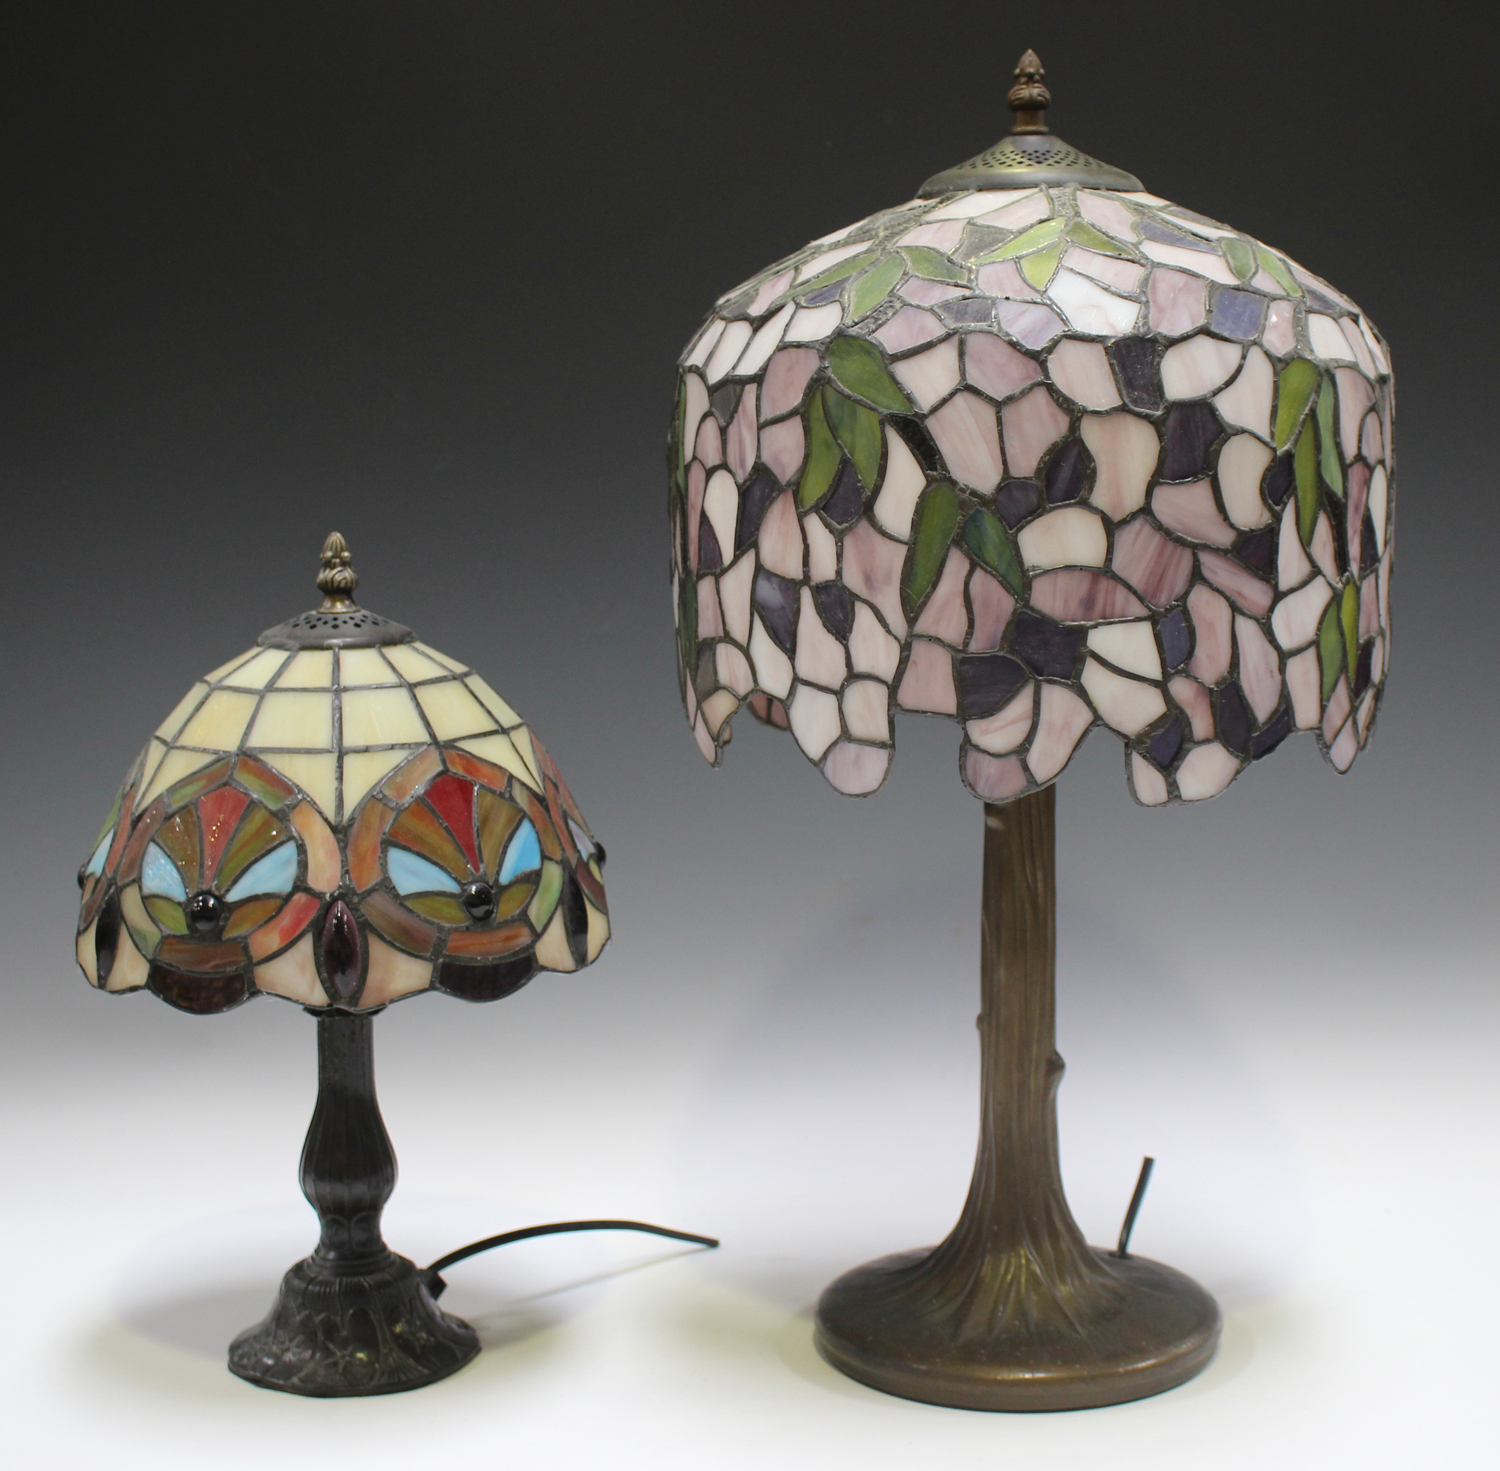 A modern Tiffany style table lamp with a stained and leaded glass domed shade, height 53cm, together